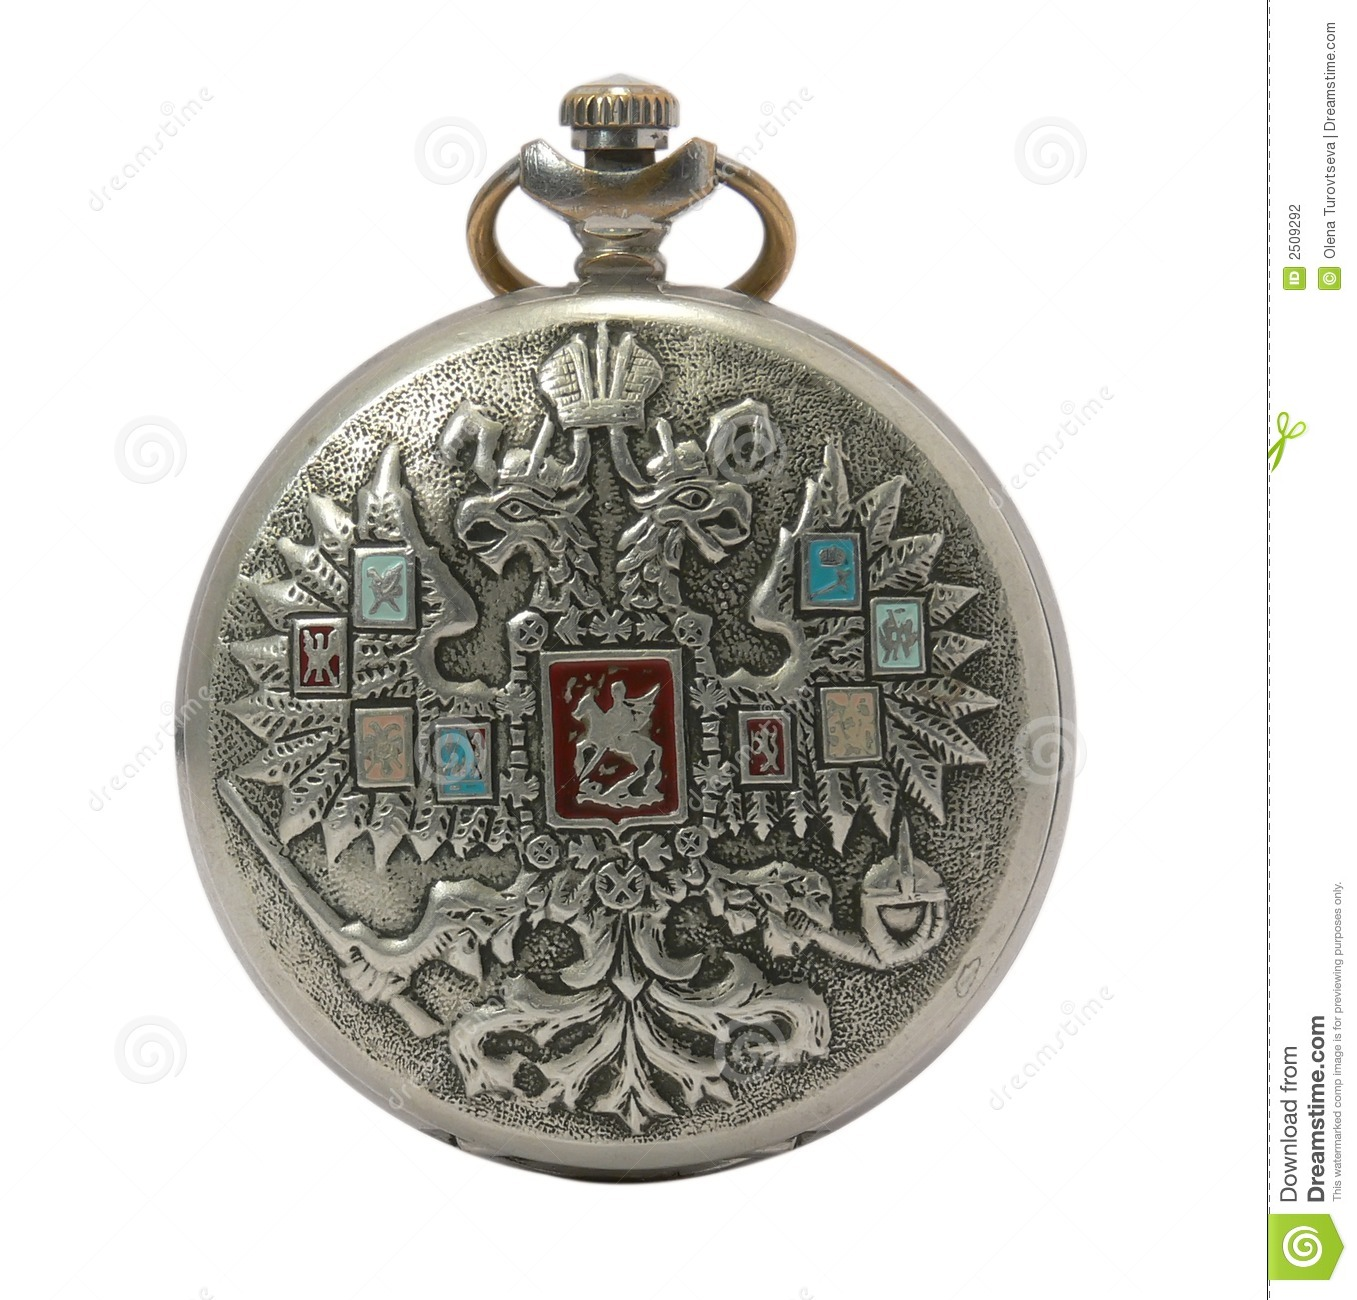 Russian silver antique pocket watch isolated on a white background.